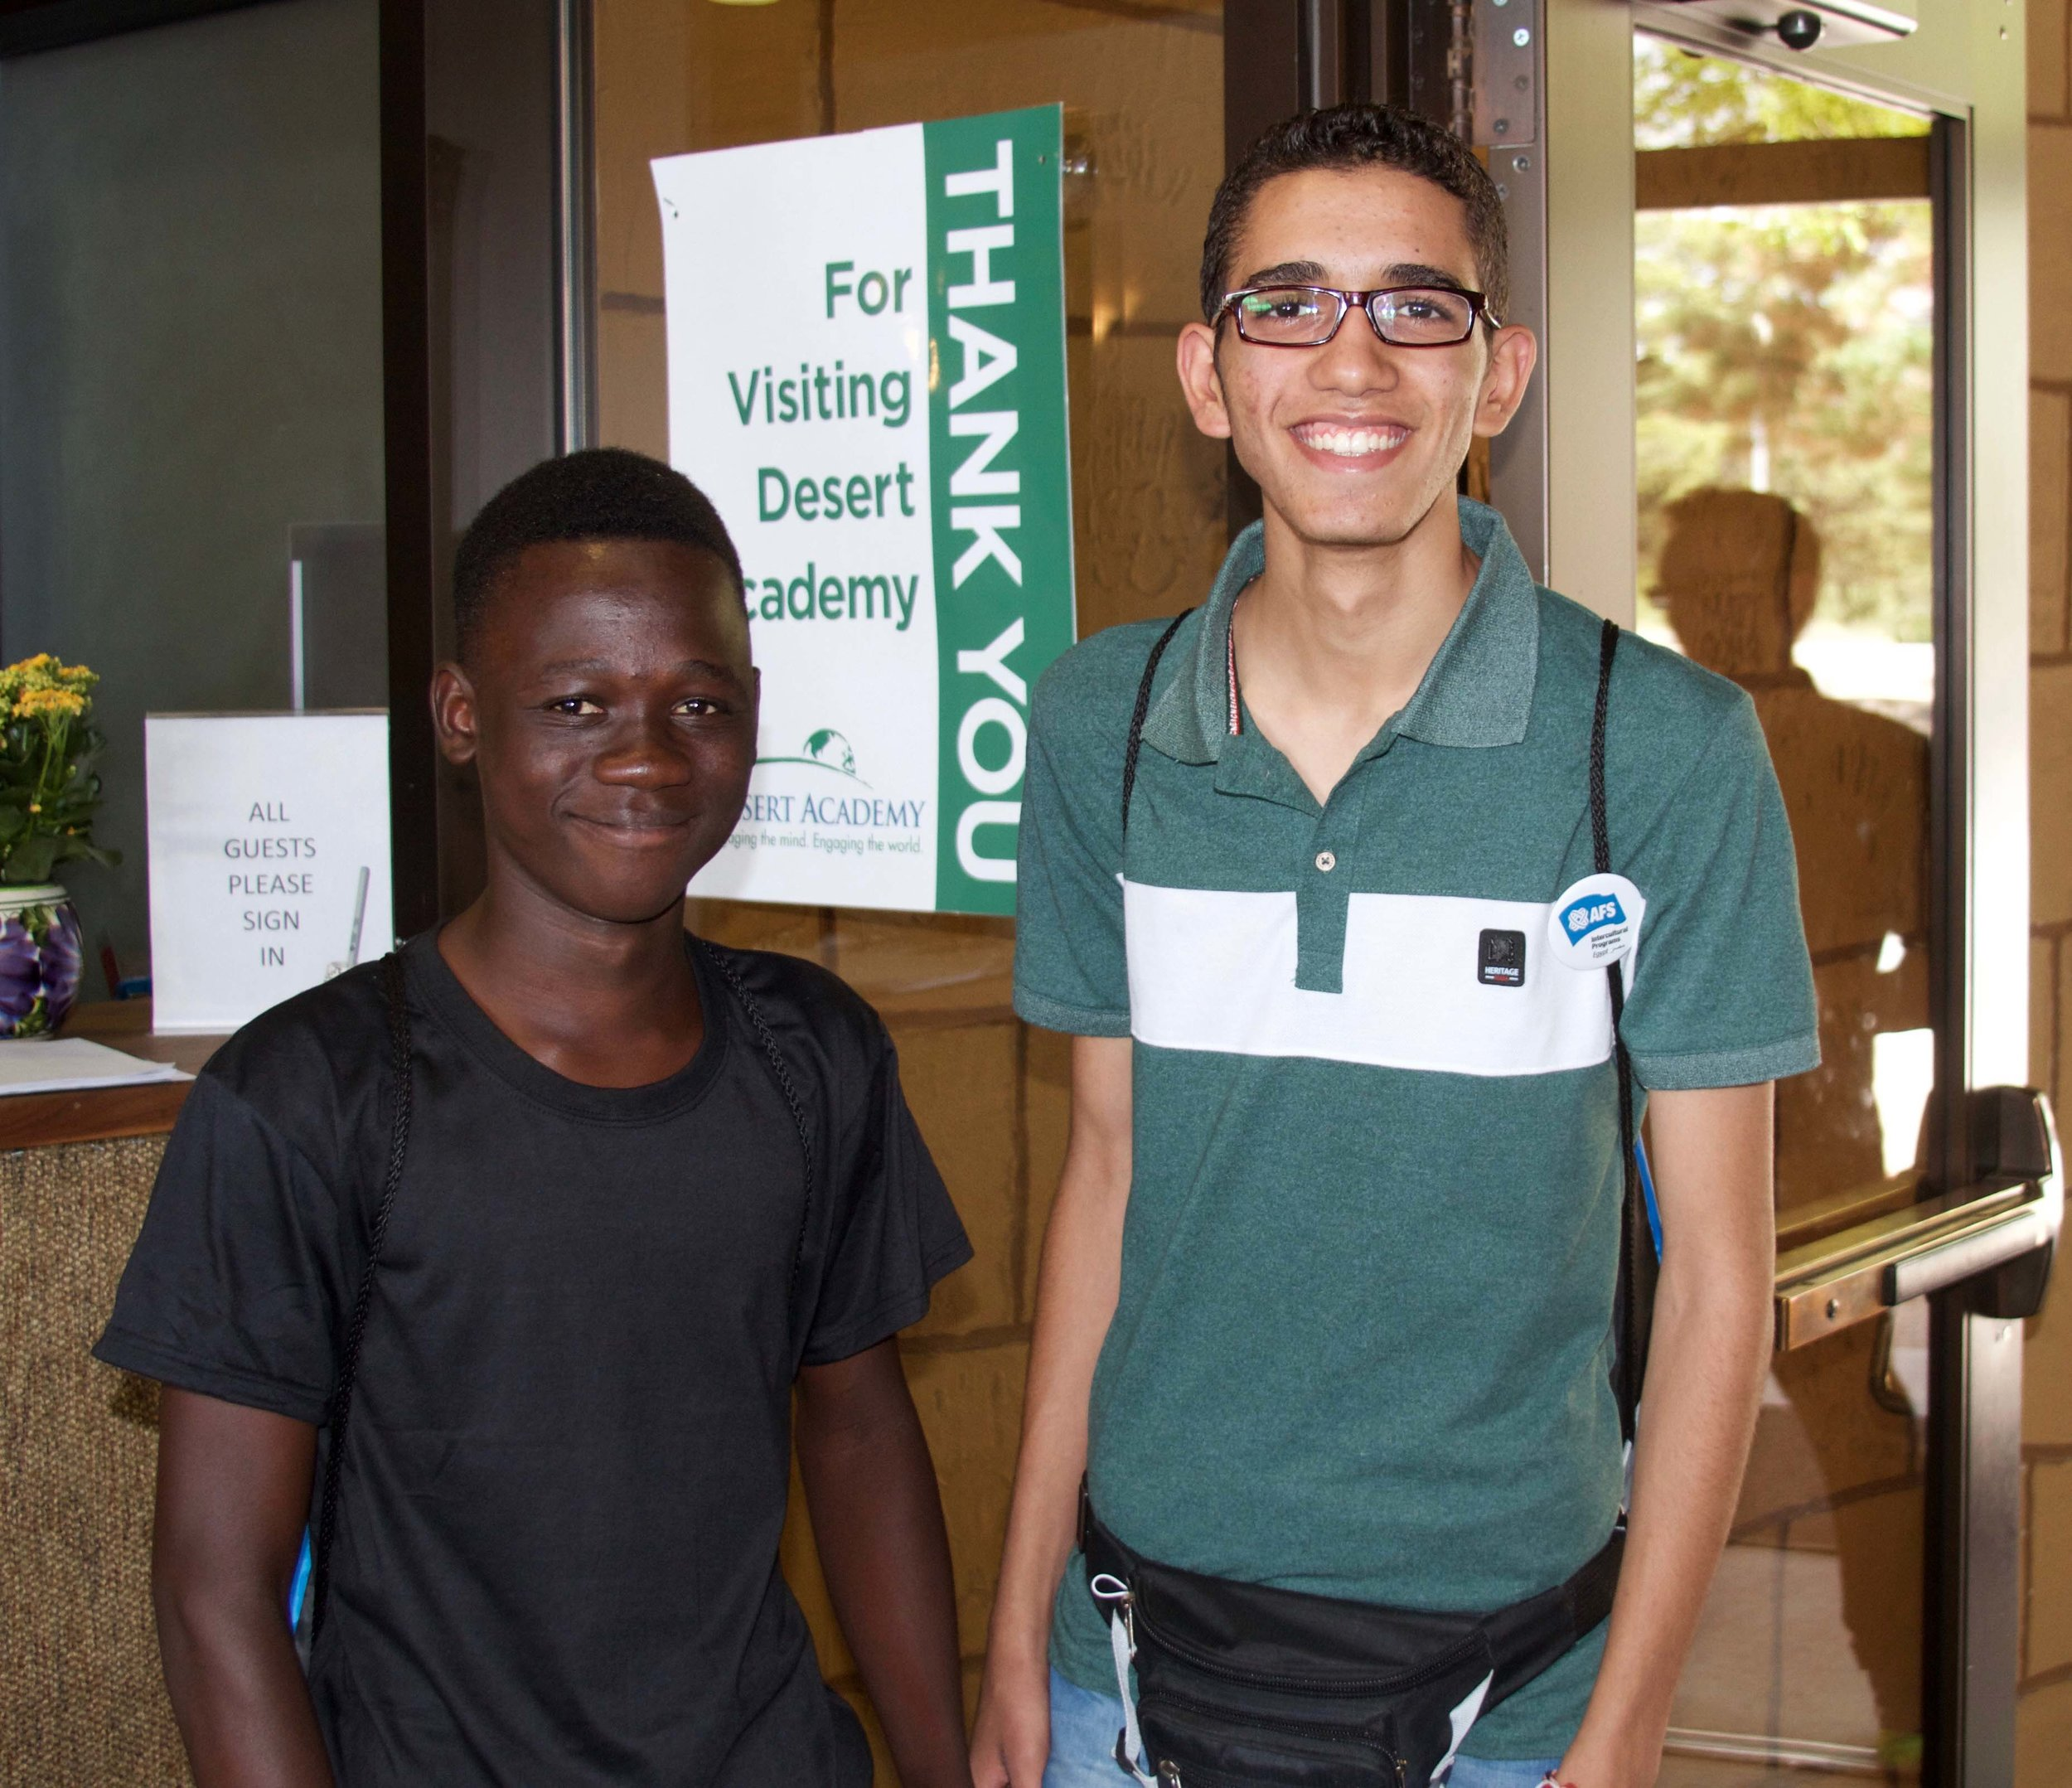 Adam and Moka - Adam (Ghana) and Moka (Egypt) on their first day at Desert Academy!